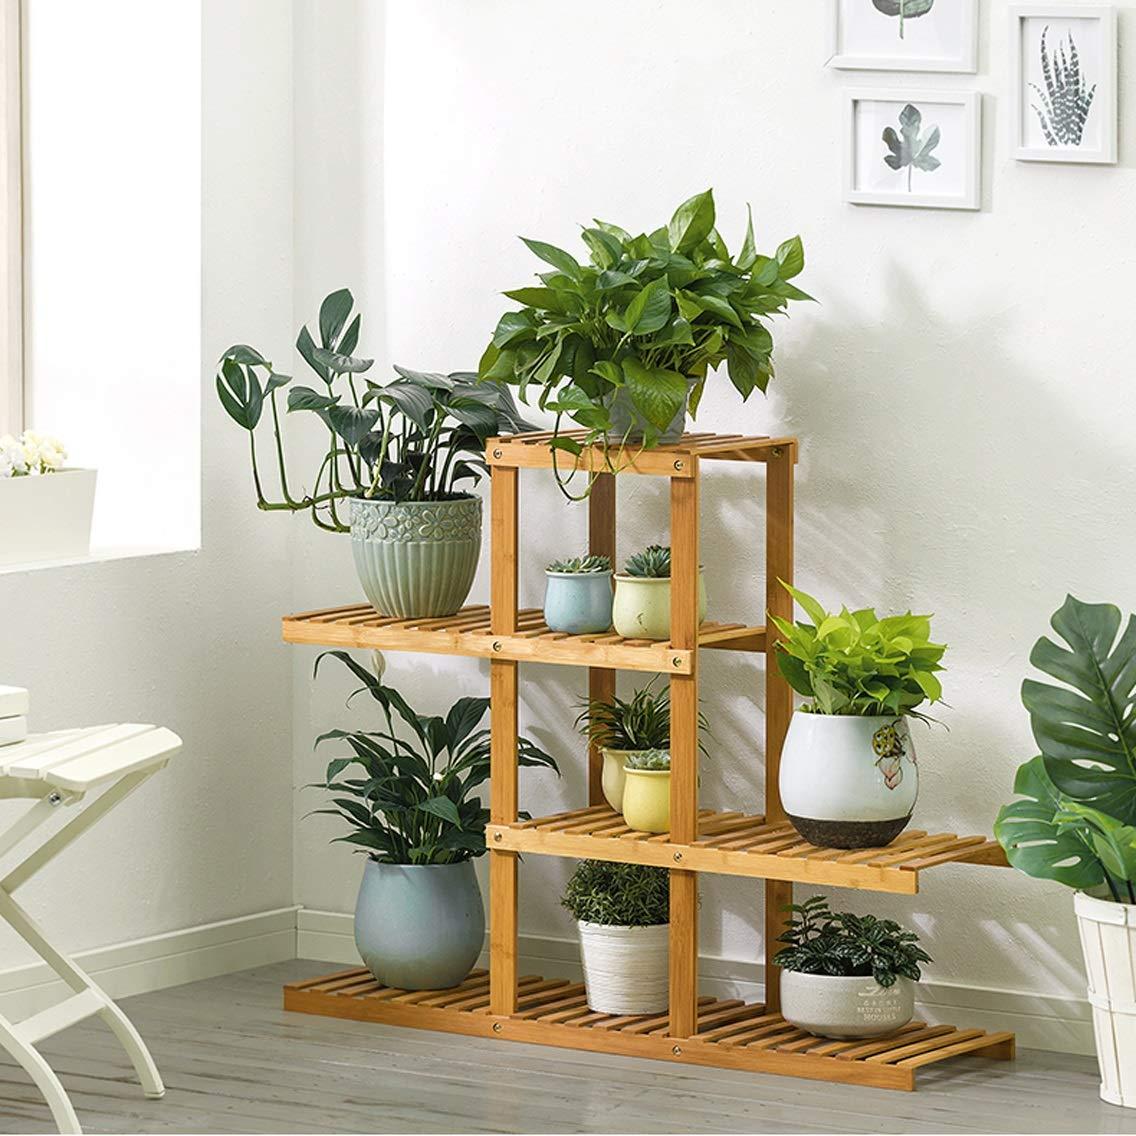 Sito ufficiale HLQW Bamboo Flower Balcone Balcone Pavimento, Multi-Layer Multi-Layer Multi-Layer Room Room Soggiorno Flower Pot Rack, The 4 Floor.  ordina adesso